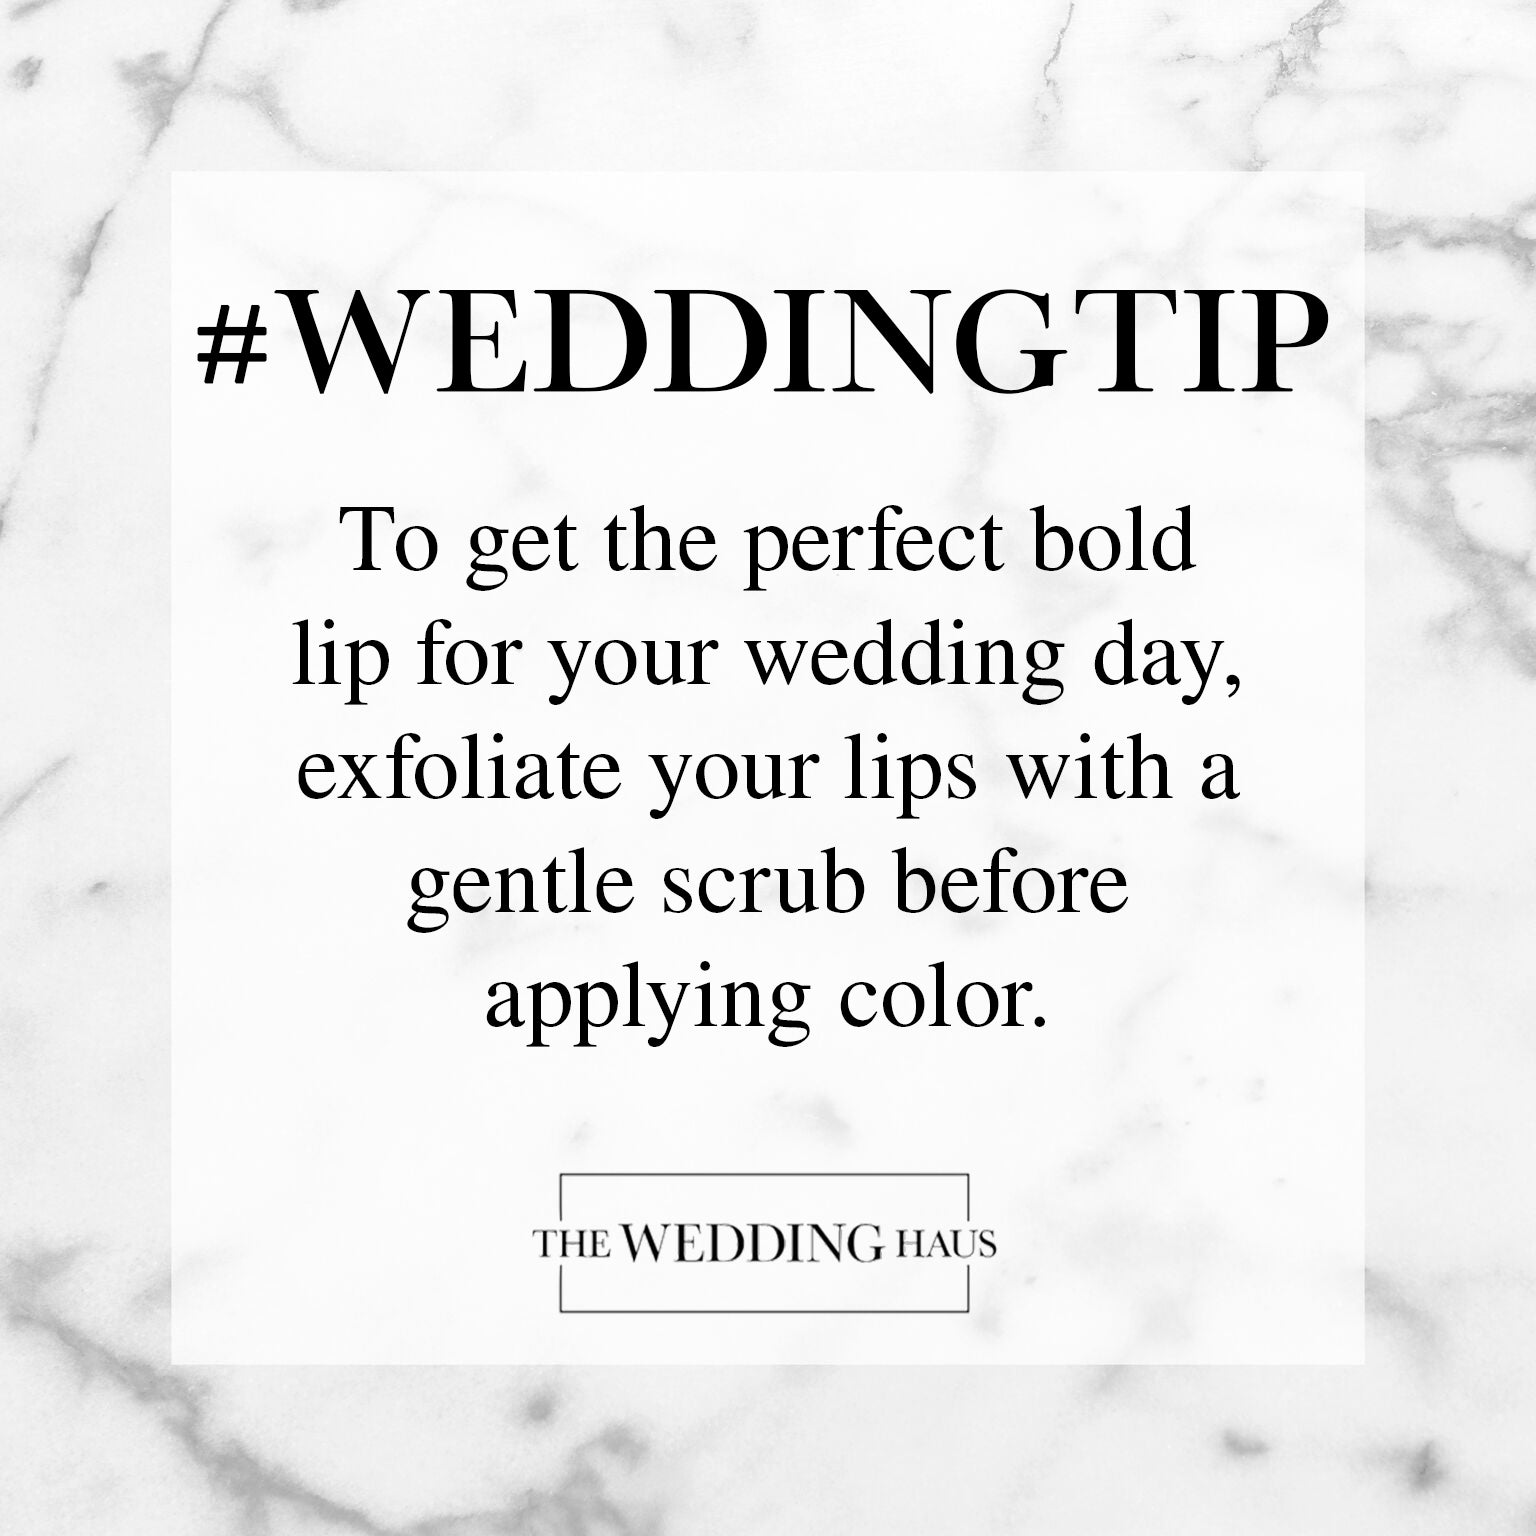 Exfoliate Your Lips Wedding Tip from The Wedding Haus